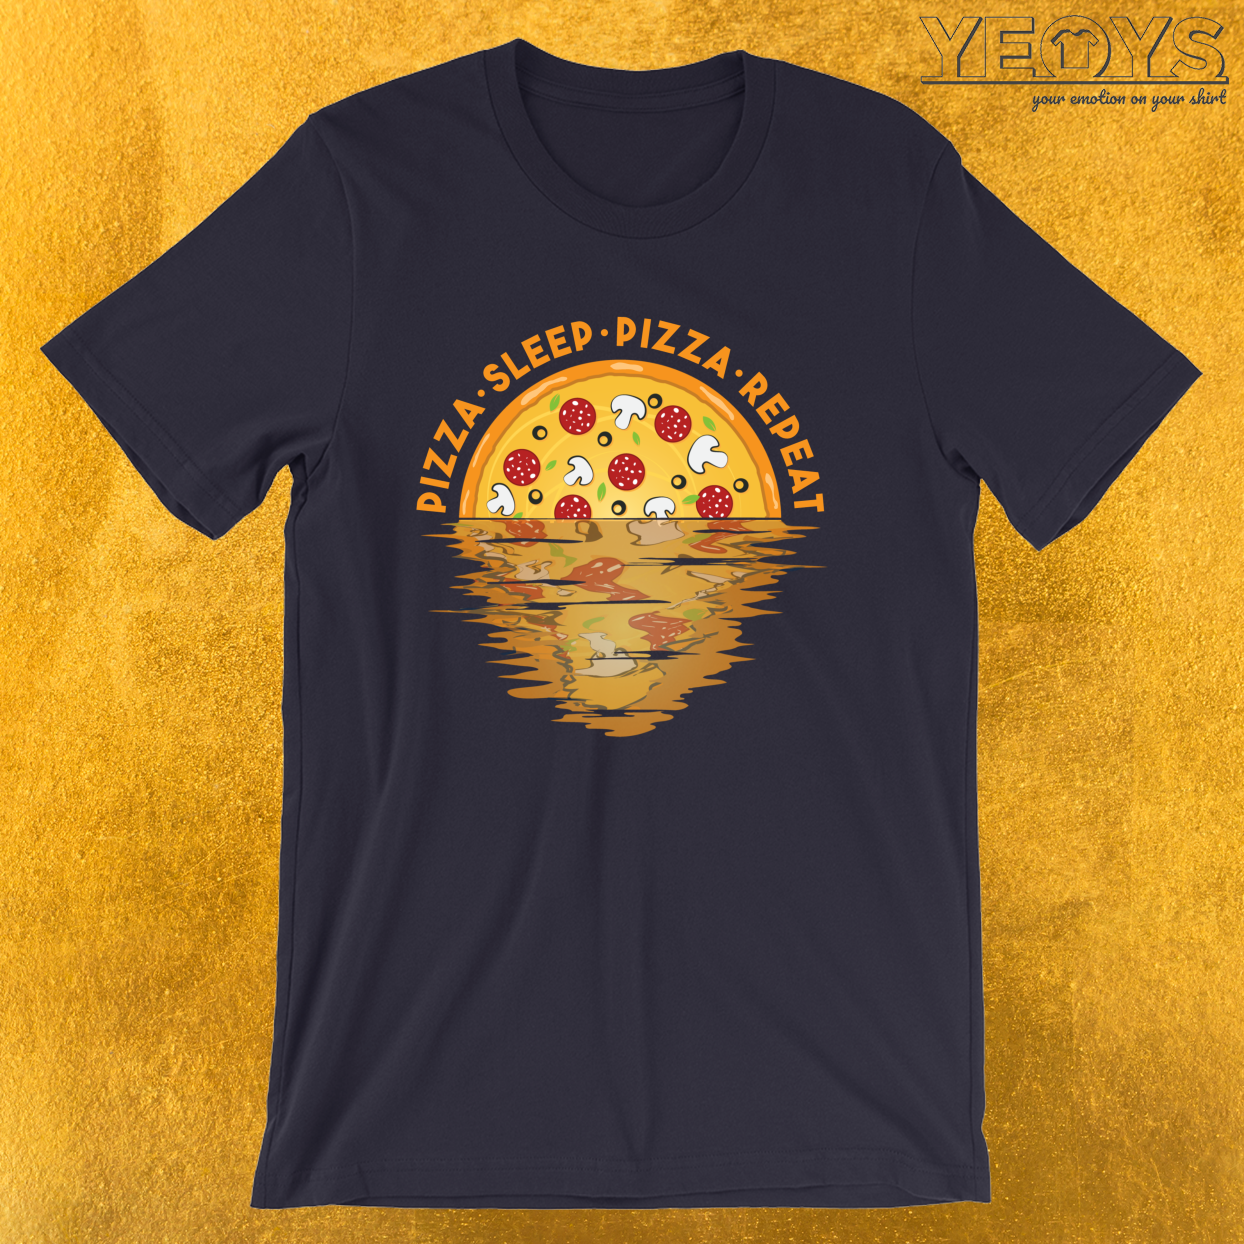 Pizza Sleep Pizza Repeat – Pizza Party Tee